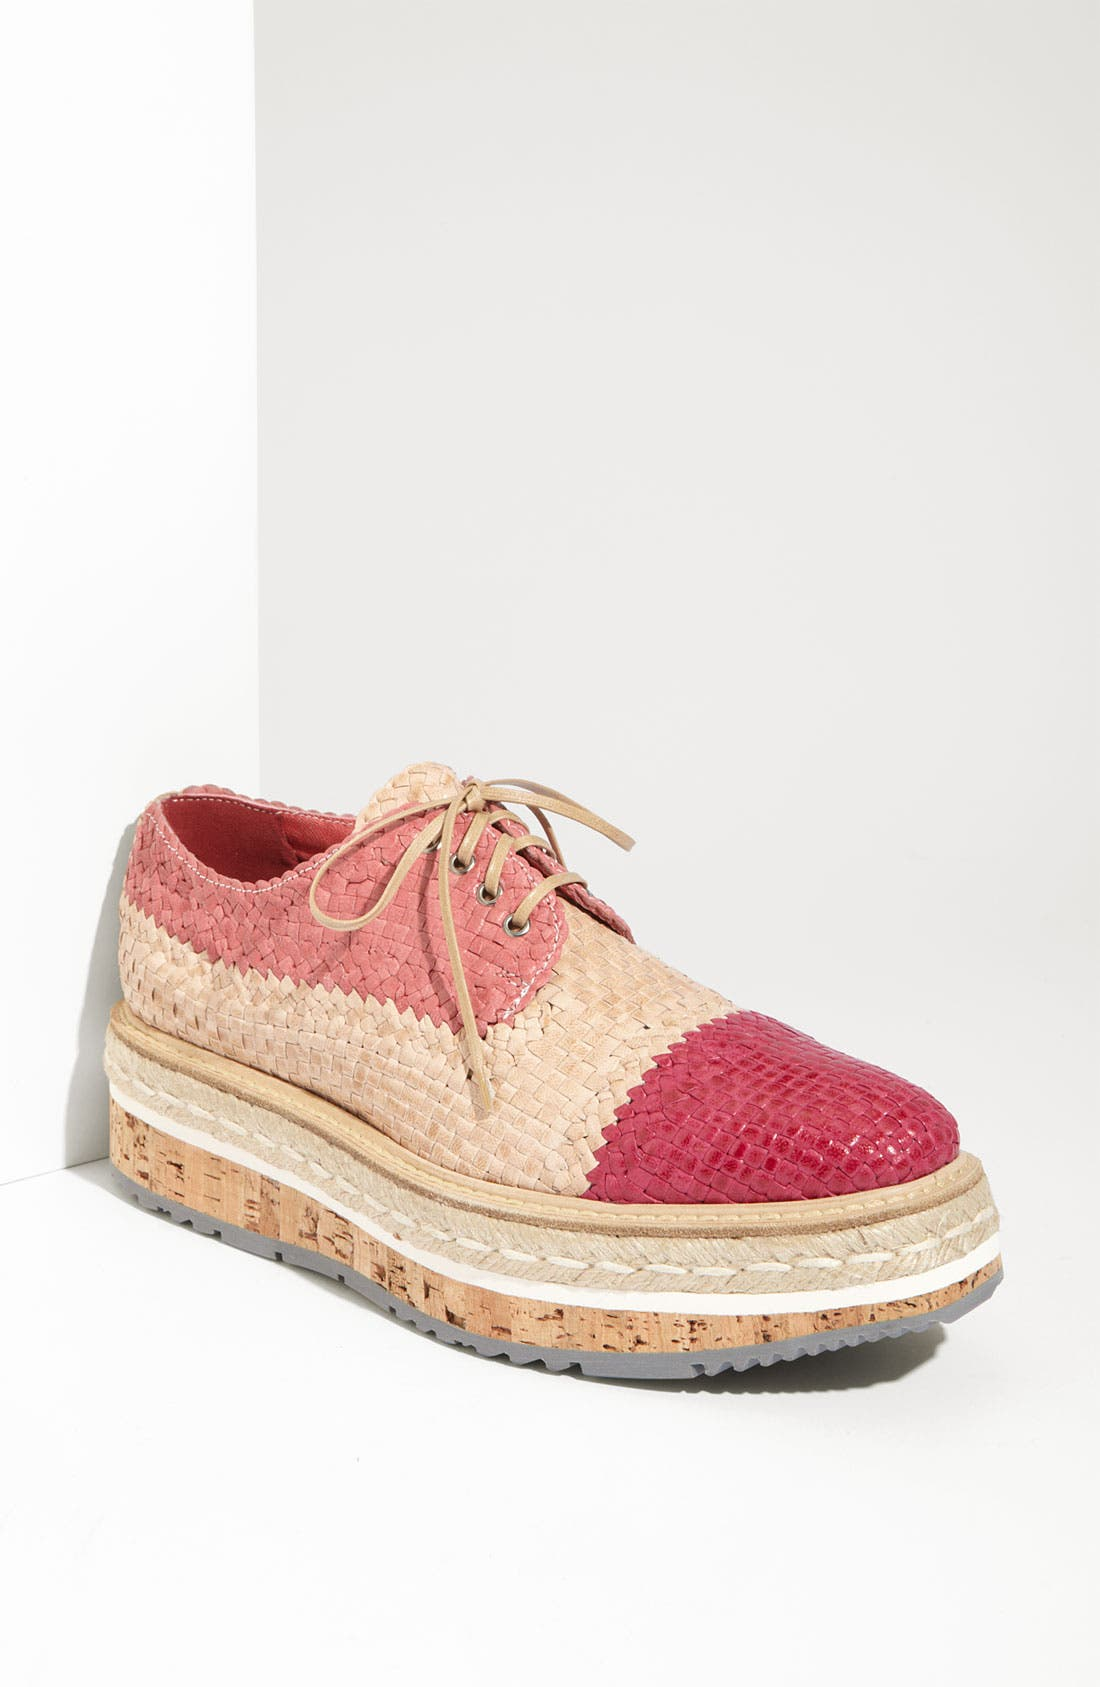 Alternate Image 1 Selected - Prada Woven Leather Platform Oxford